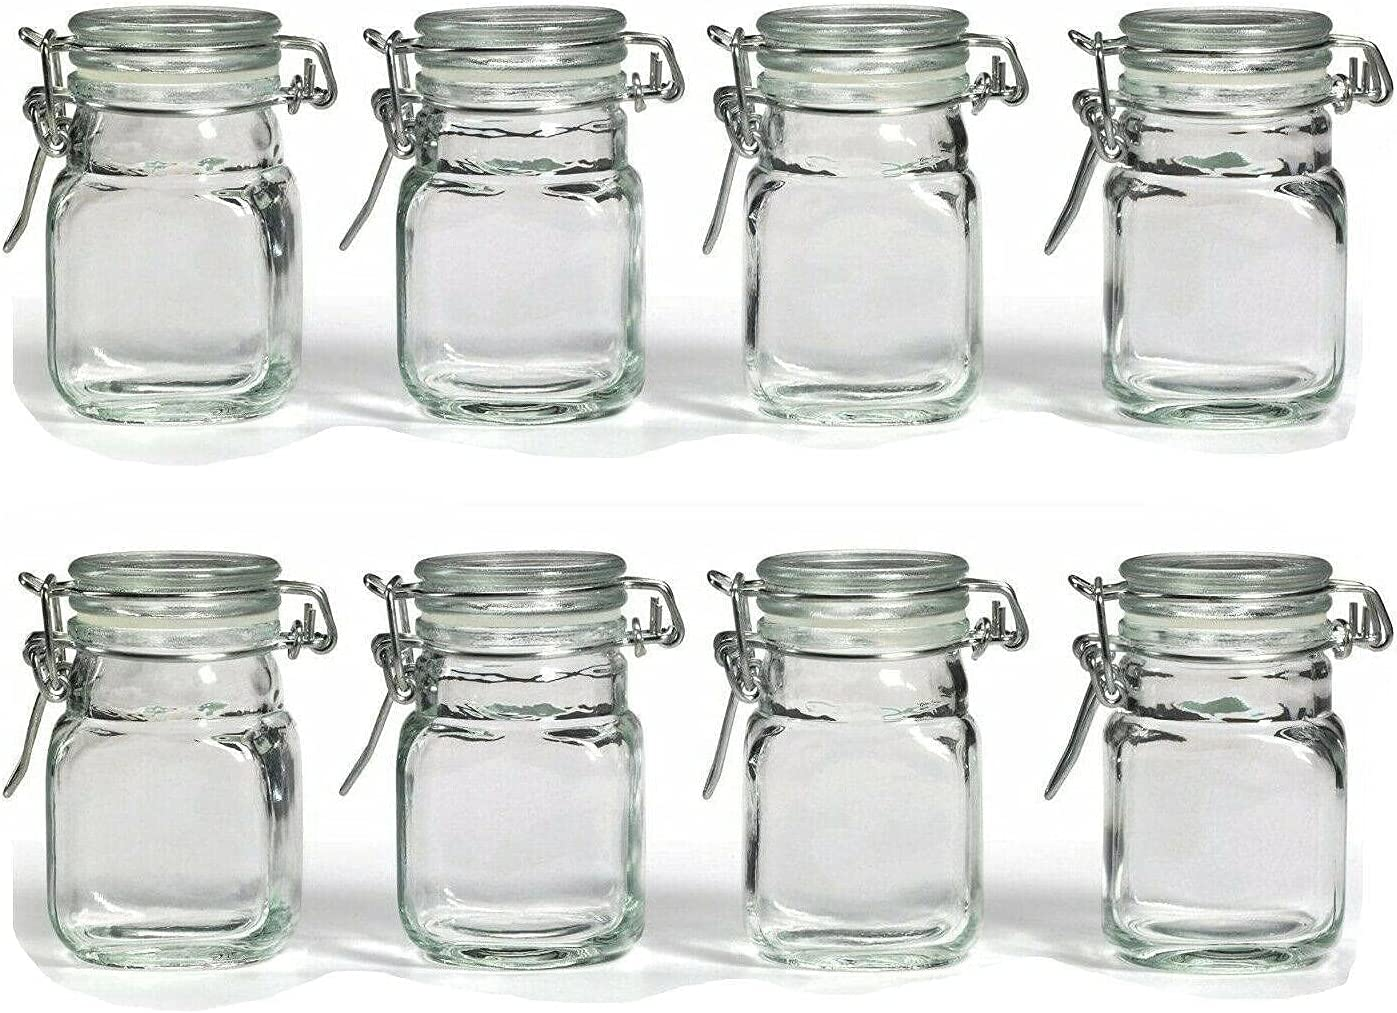 Spice Bottle Set, 6pk Glass Jars w/Hinge Clear Food Storage Containers Canisters Kitchen organization Kitchen decor Storage containers Spice jars Kitchen accessories Kitchen storage Food storage